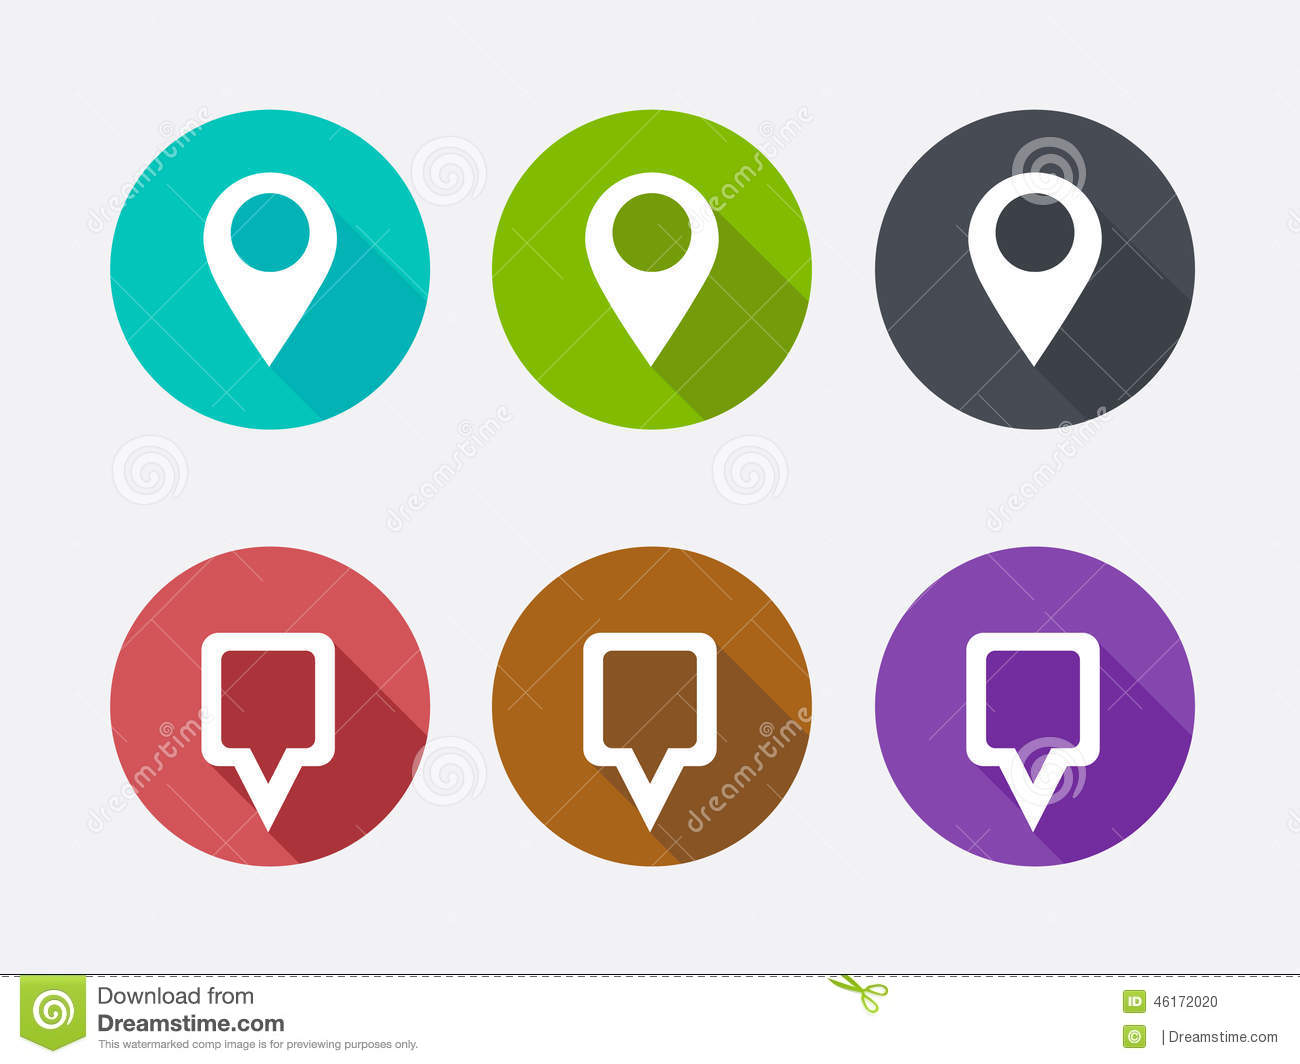 Free Google Maps Pointer Icon: Map Pointer Icon. Location Marker Symbol. Long Shadows